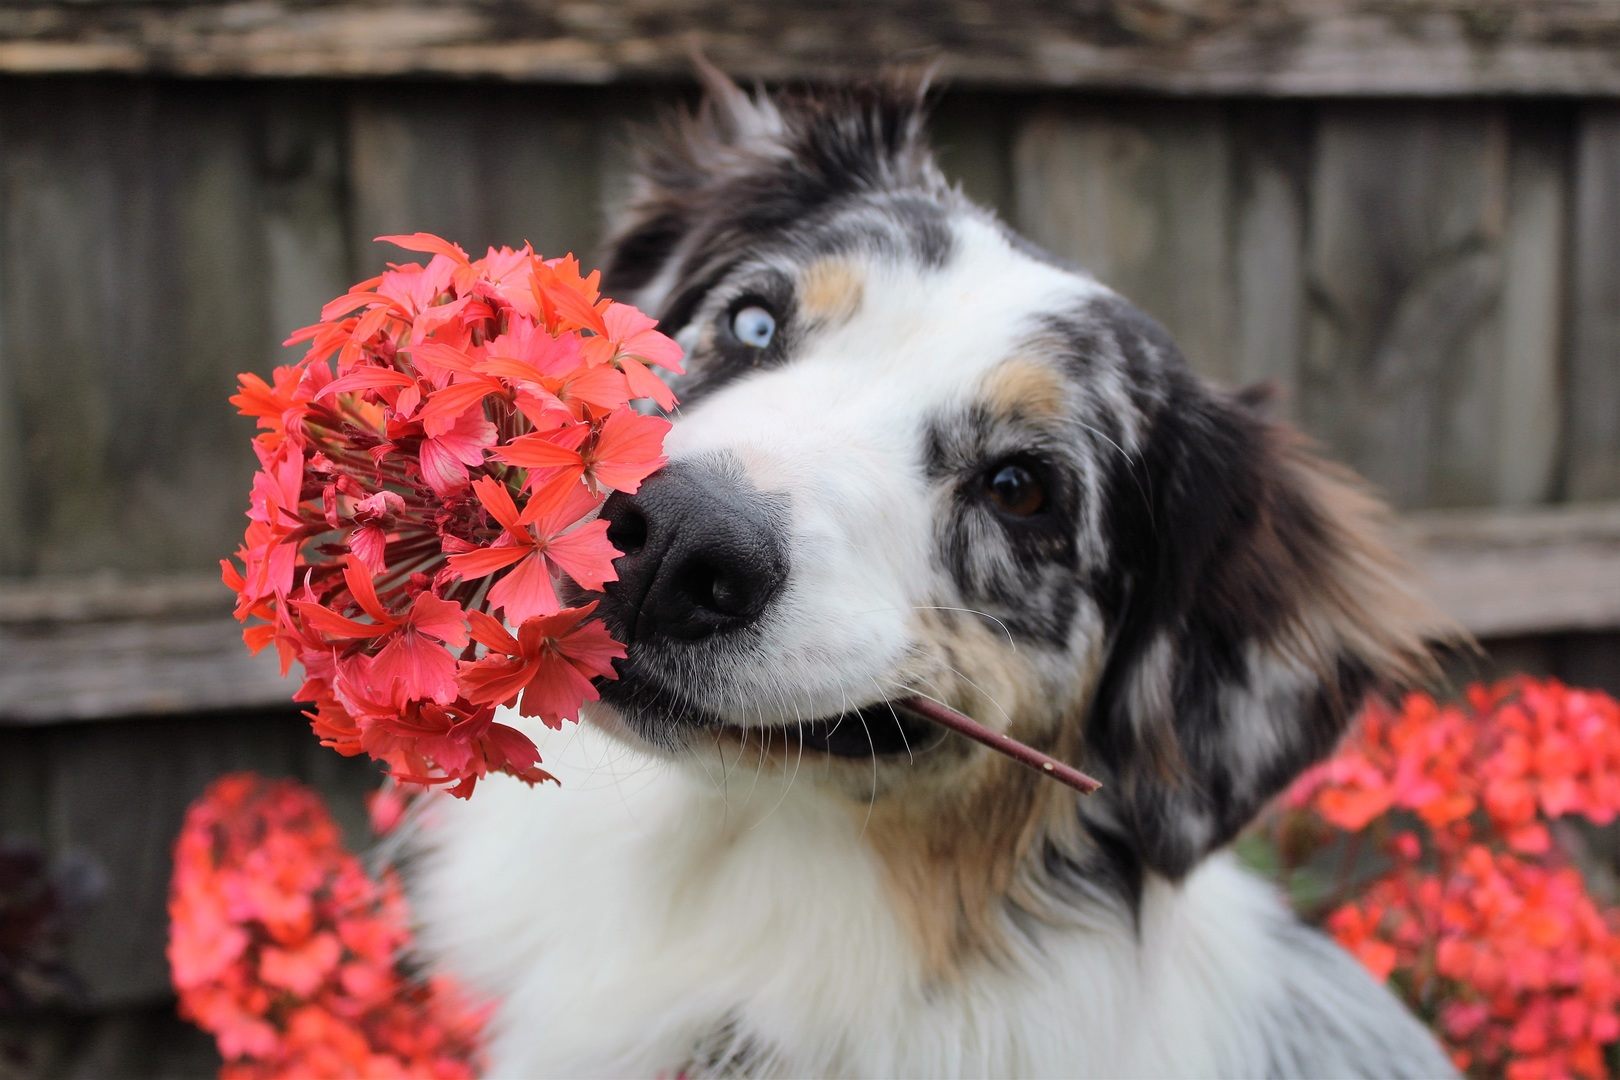 12 Household plants dog owners should avoid